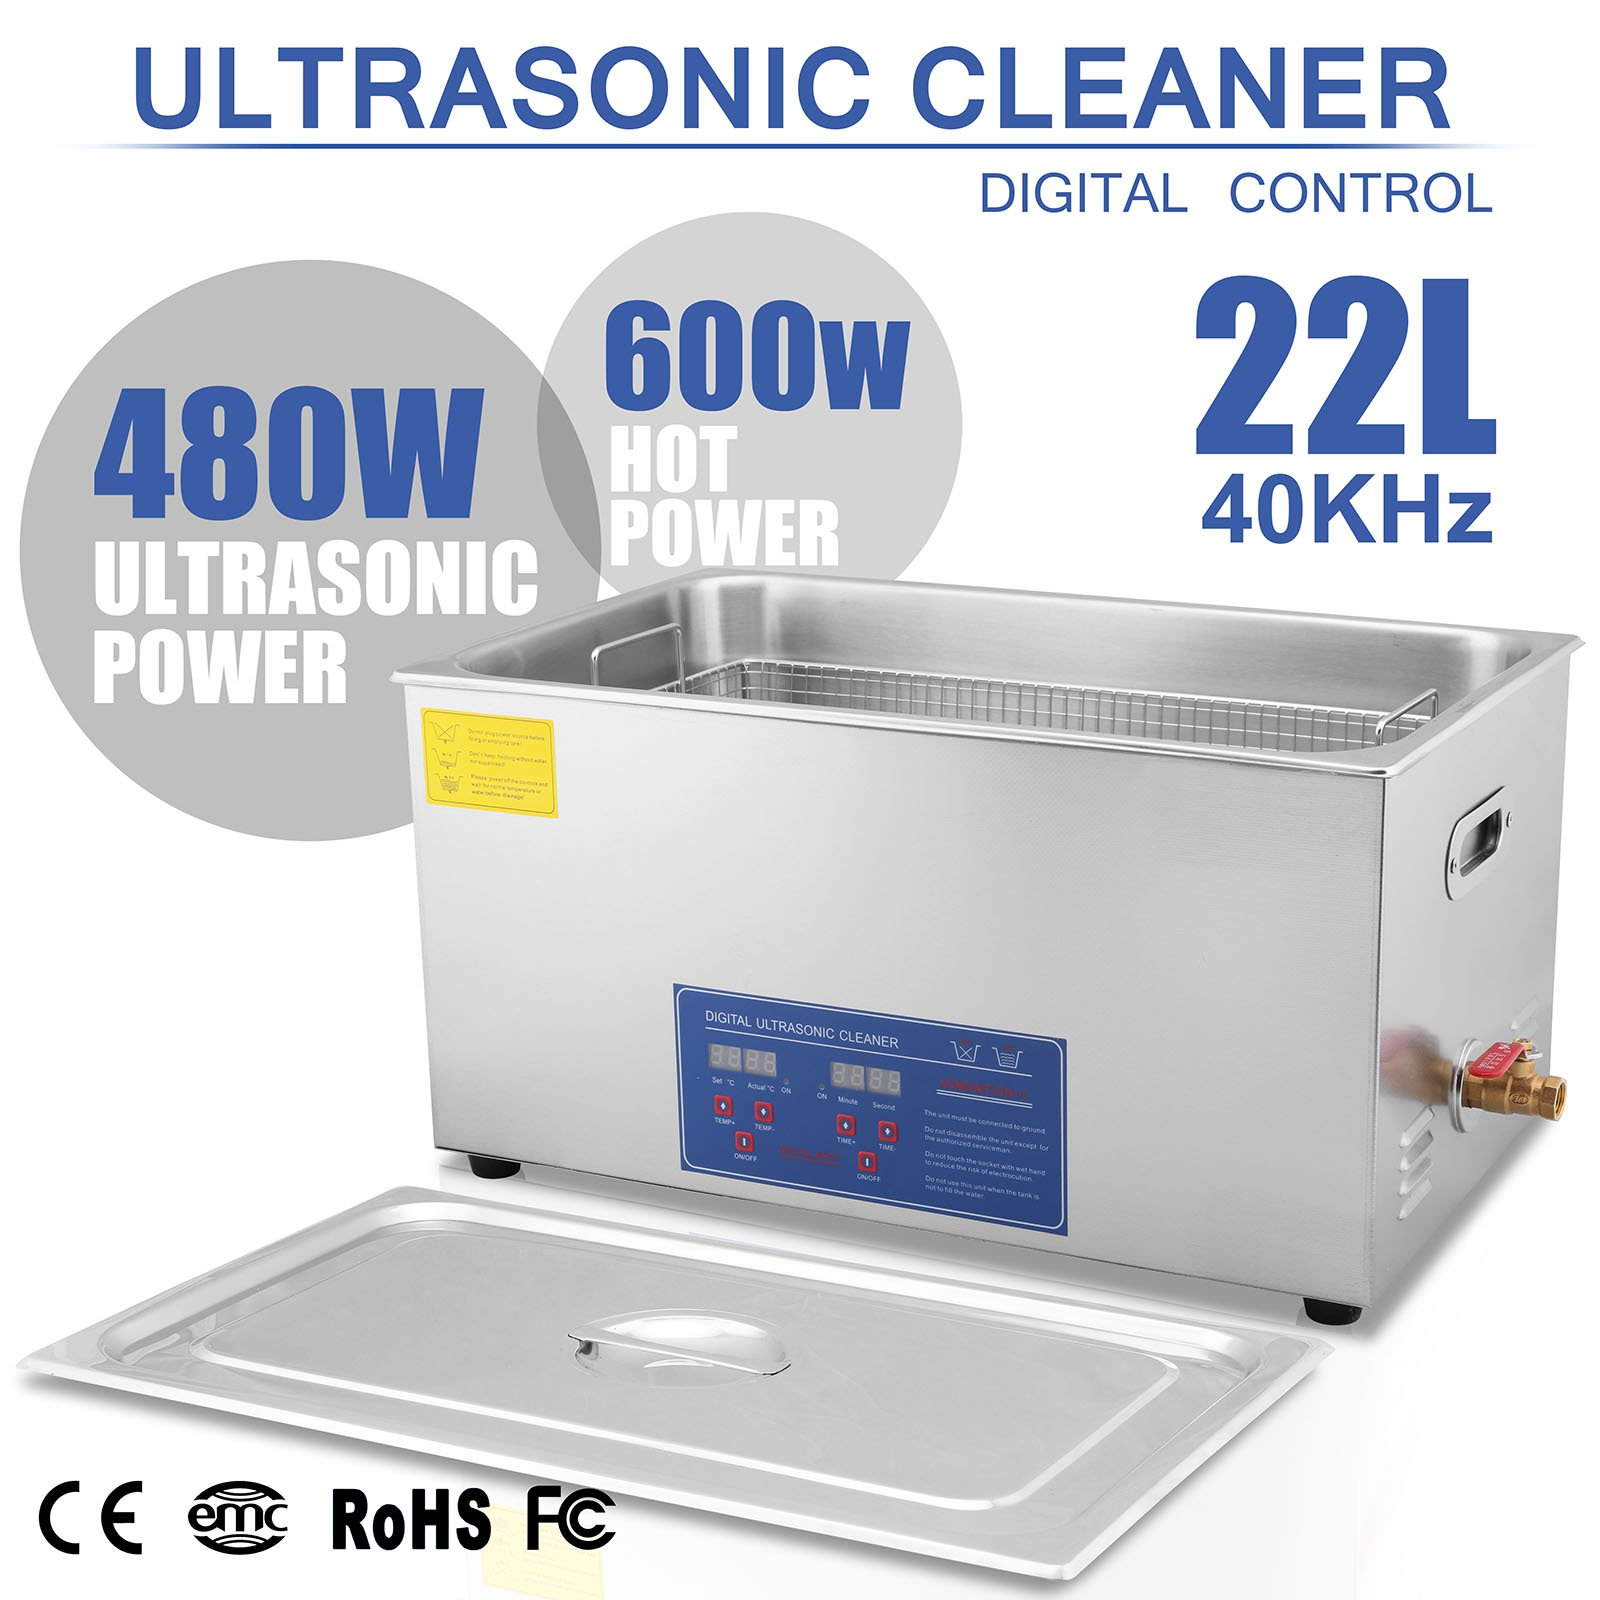 HappyBuy Ultrasonic Cleaner 22L Large Commercial Ultrasonic Cleaner Stainless Steel Ultrasonic Cleaner With Heater And Digital Control Ultrasonic Cleaner Solution Heated With Jewelry